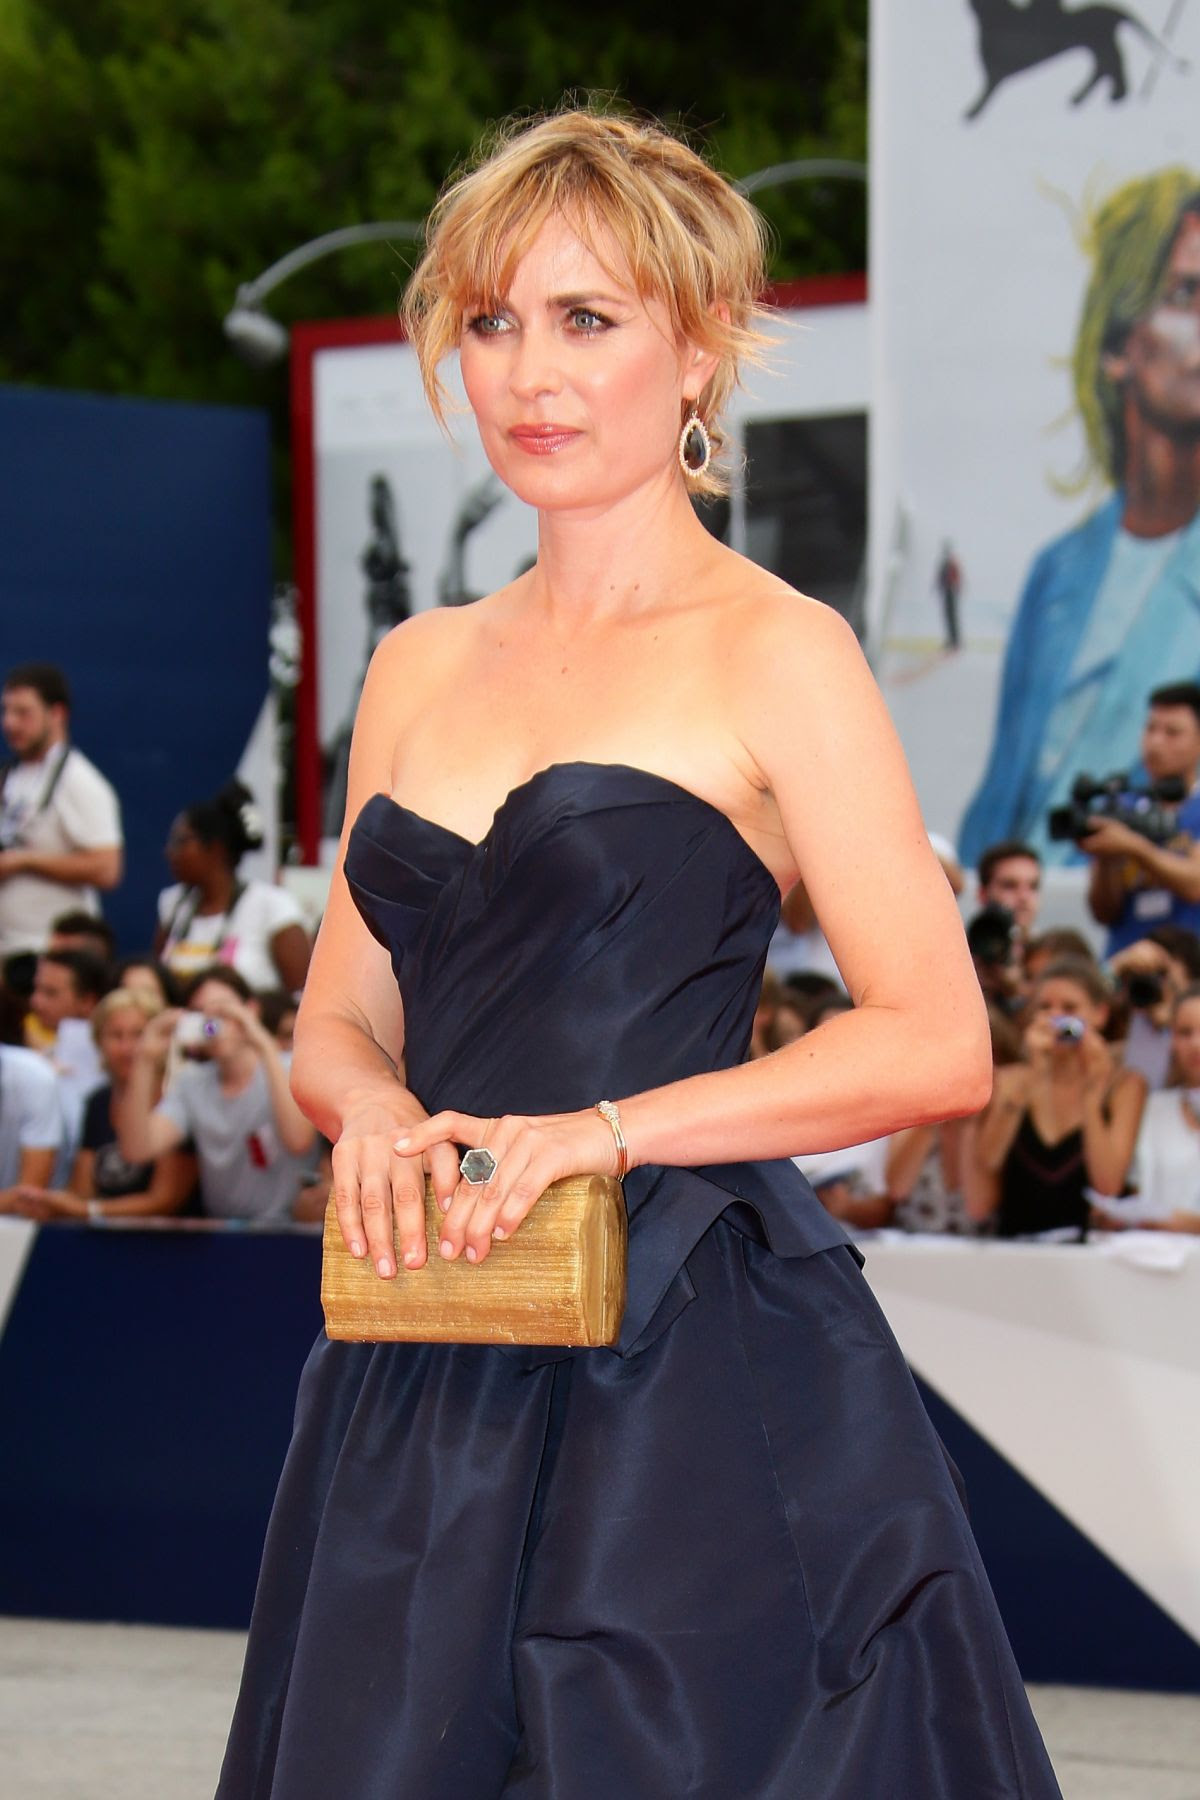 http://www.hawtcelebs.com/wp-content/uploads/2015/09/radha-mitchell-at-everest-premiere-and-72nd-venice-film-festival-opening-ceremony_3.jpg